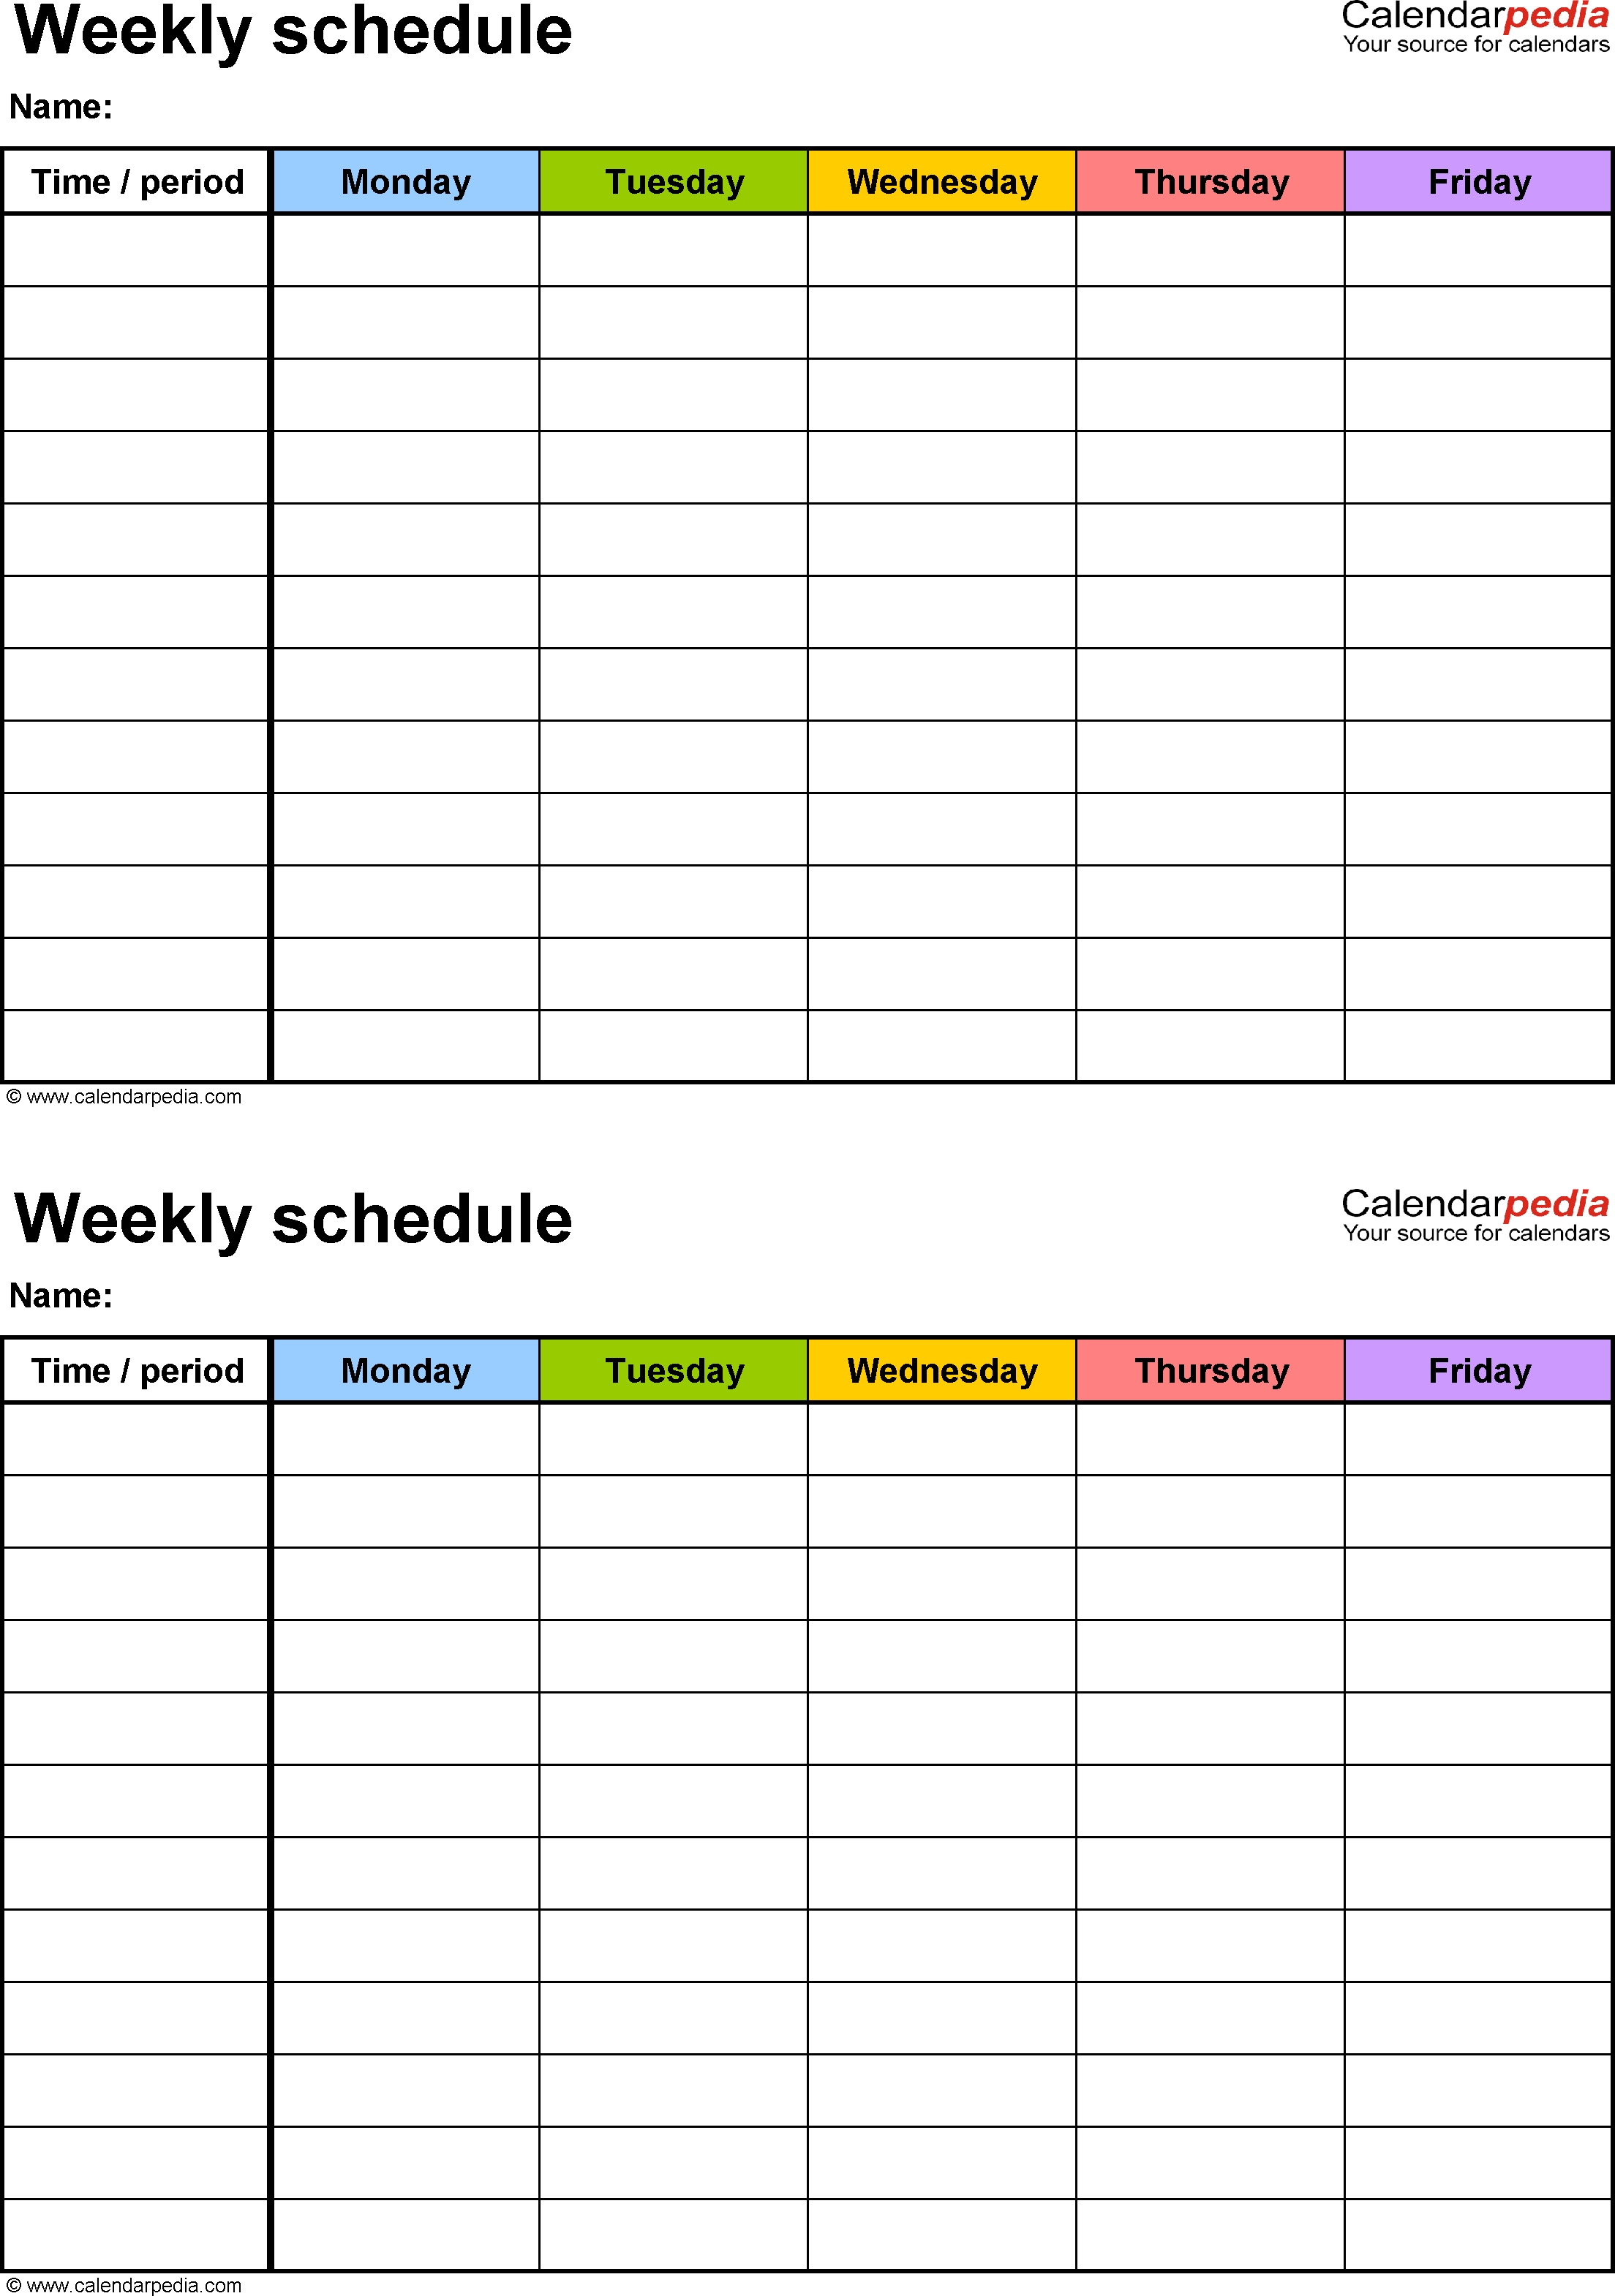 Free Weekly Schedule Templates For Pdf - 18 Templates with regard to Blank Chore Calendar Printable Week Day 5